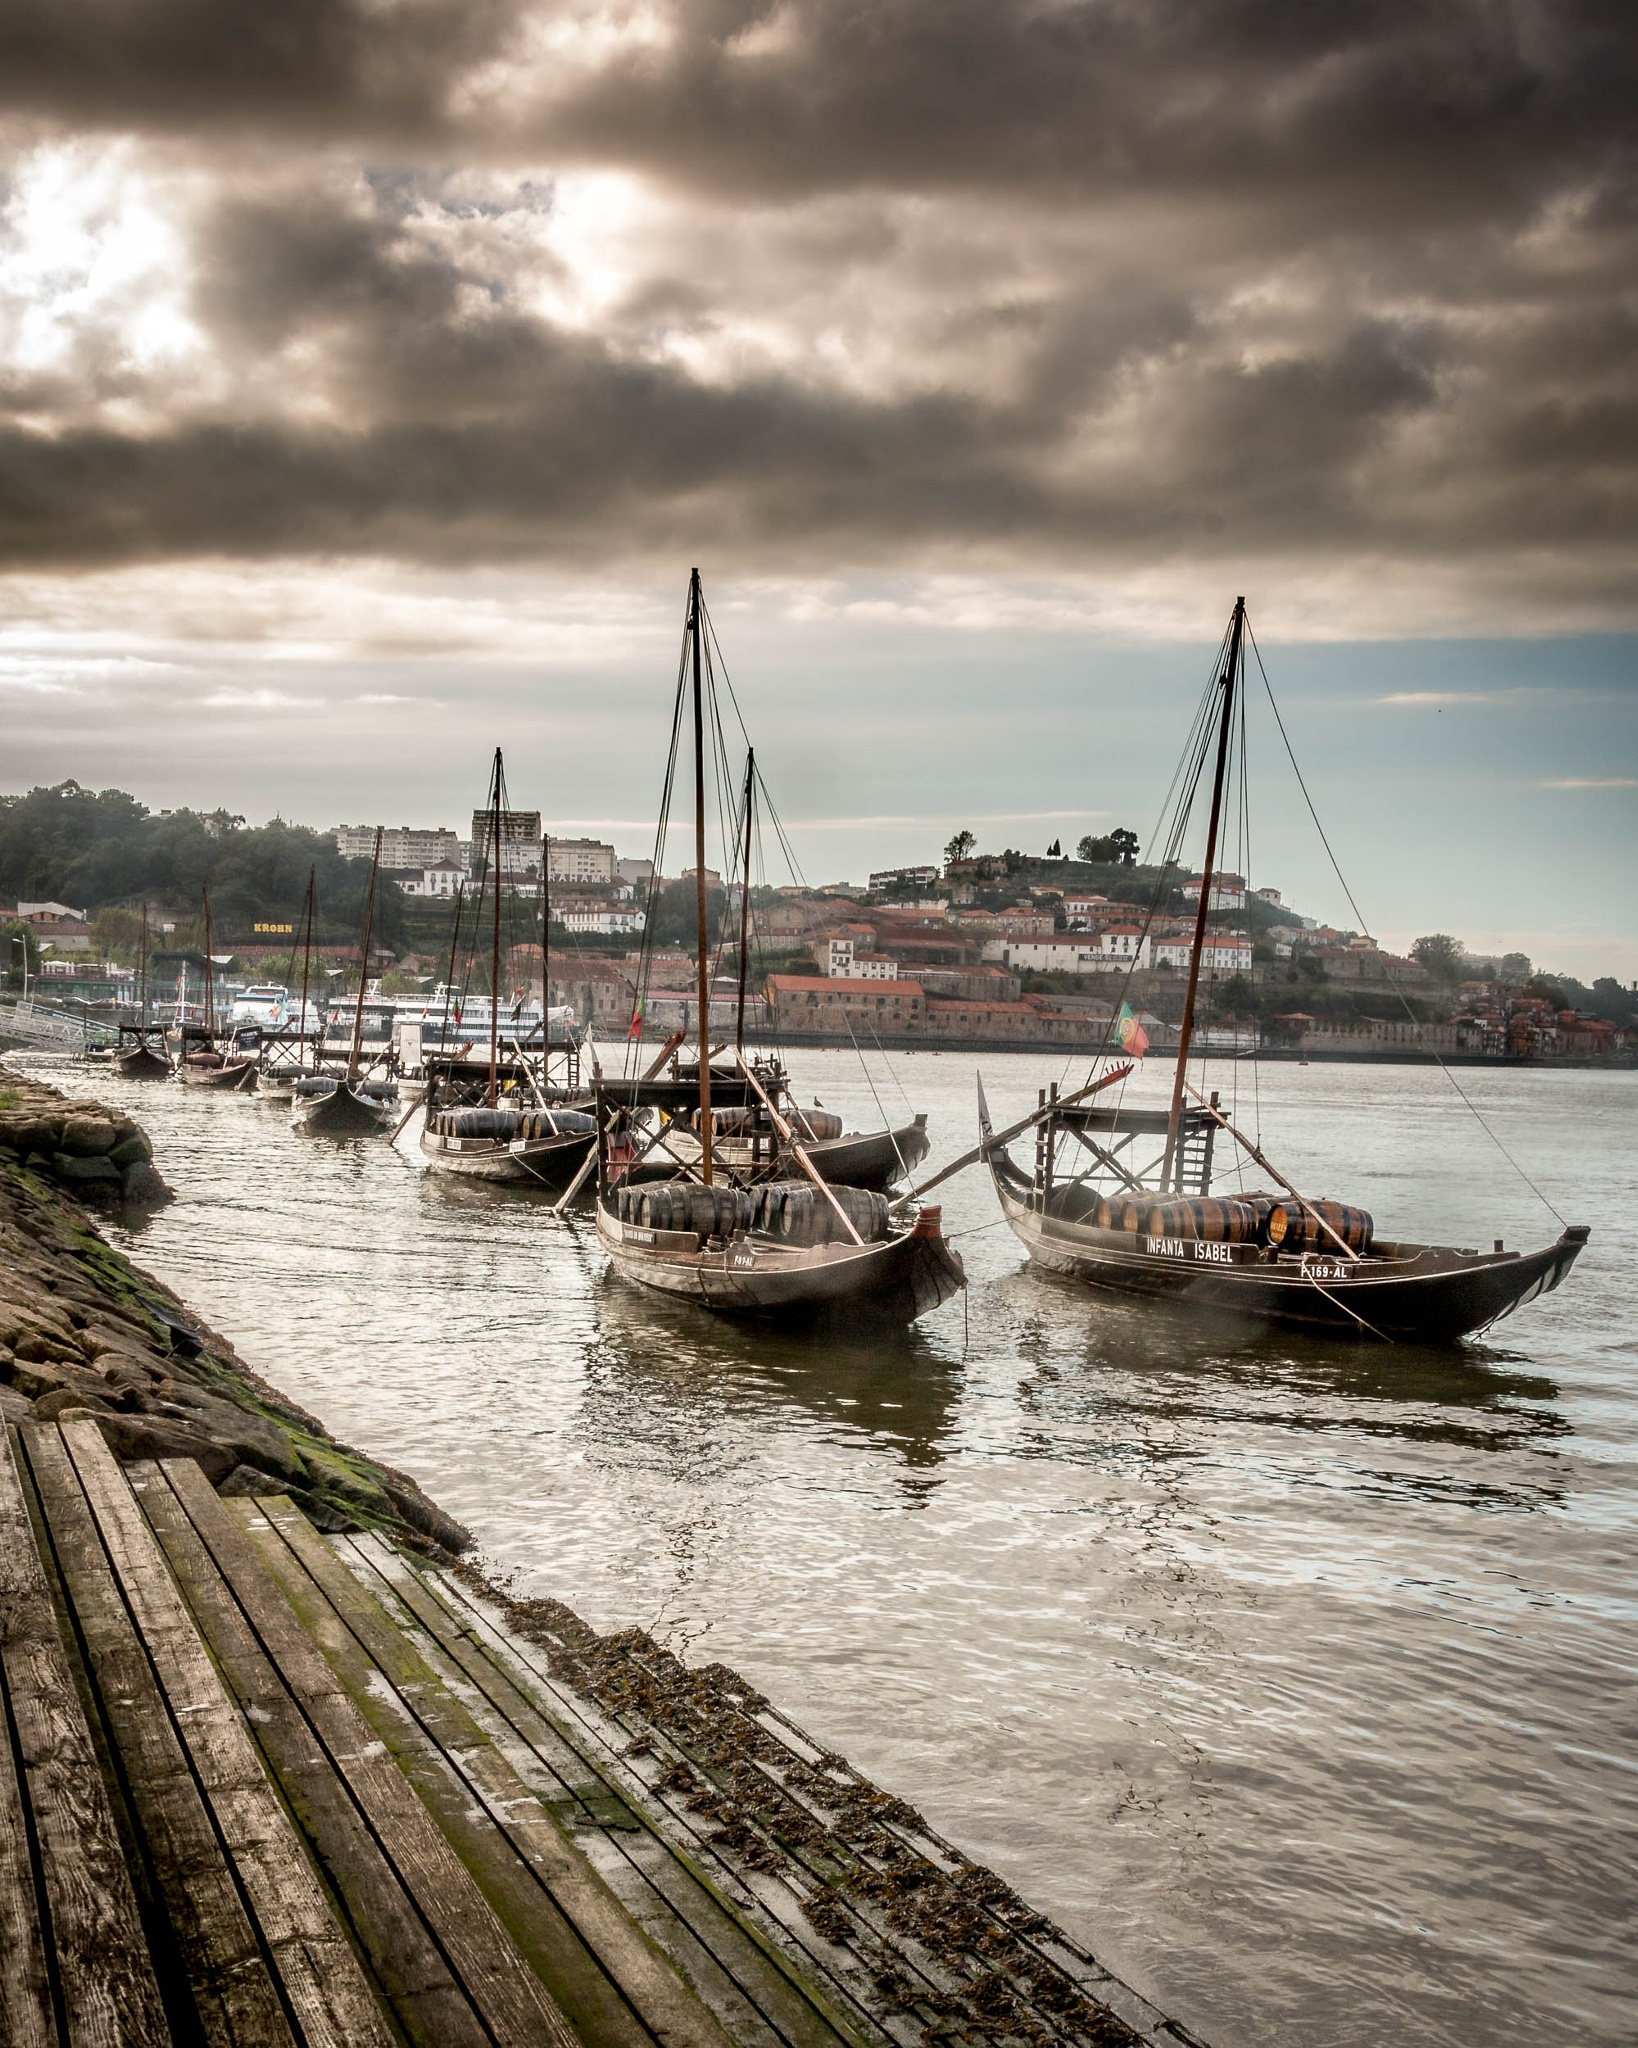 Wine boats on the Douro River by stephenhops